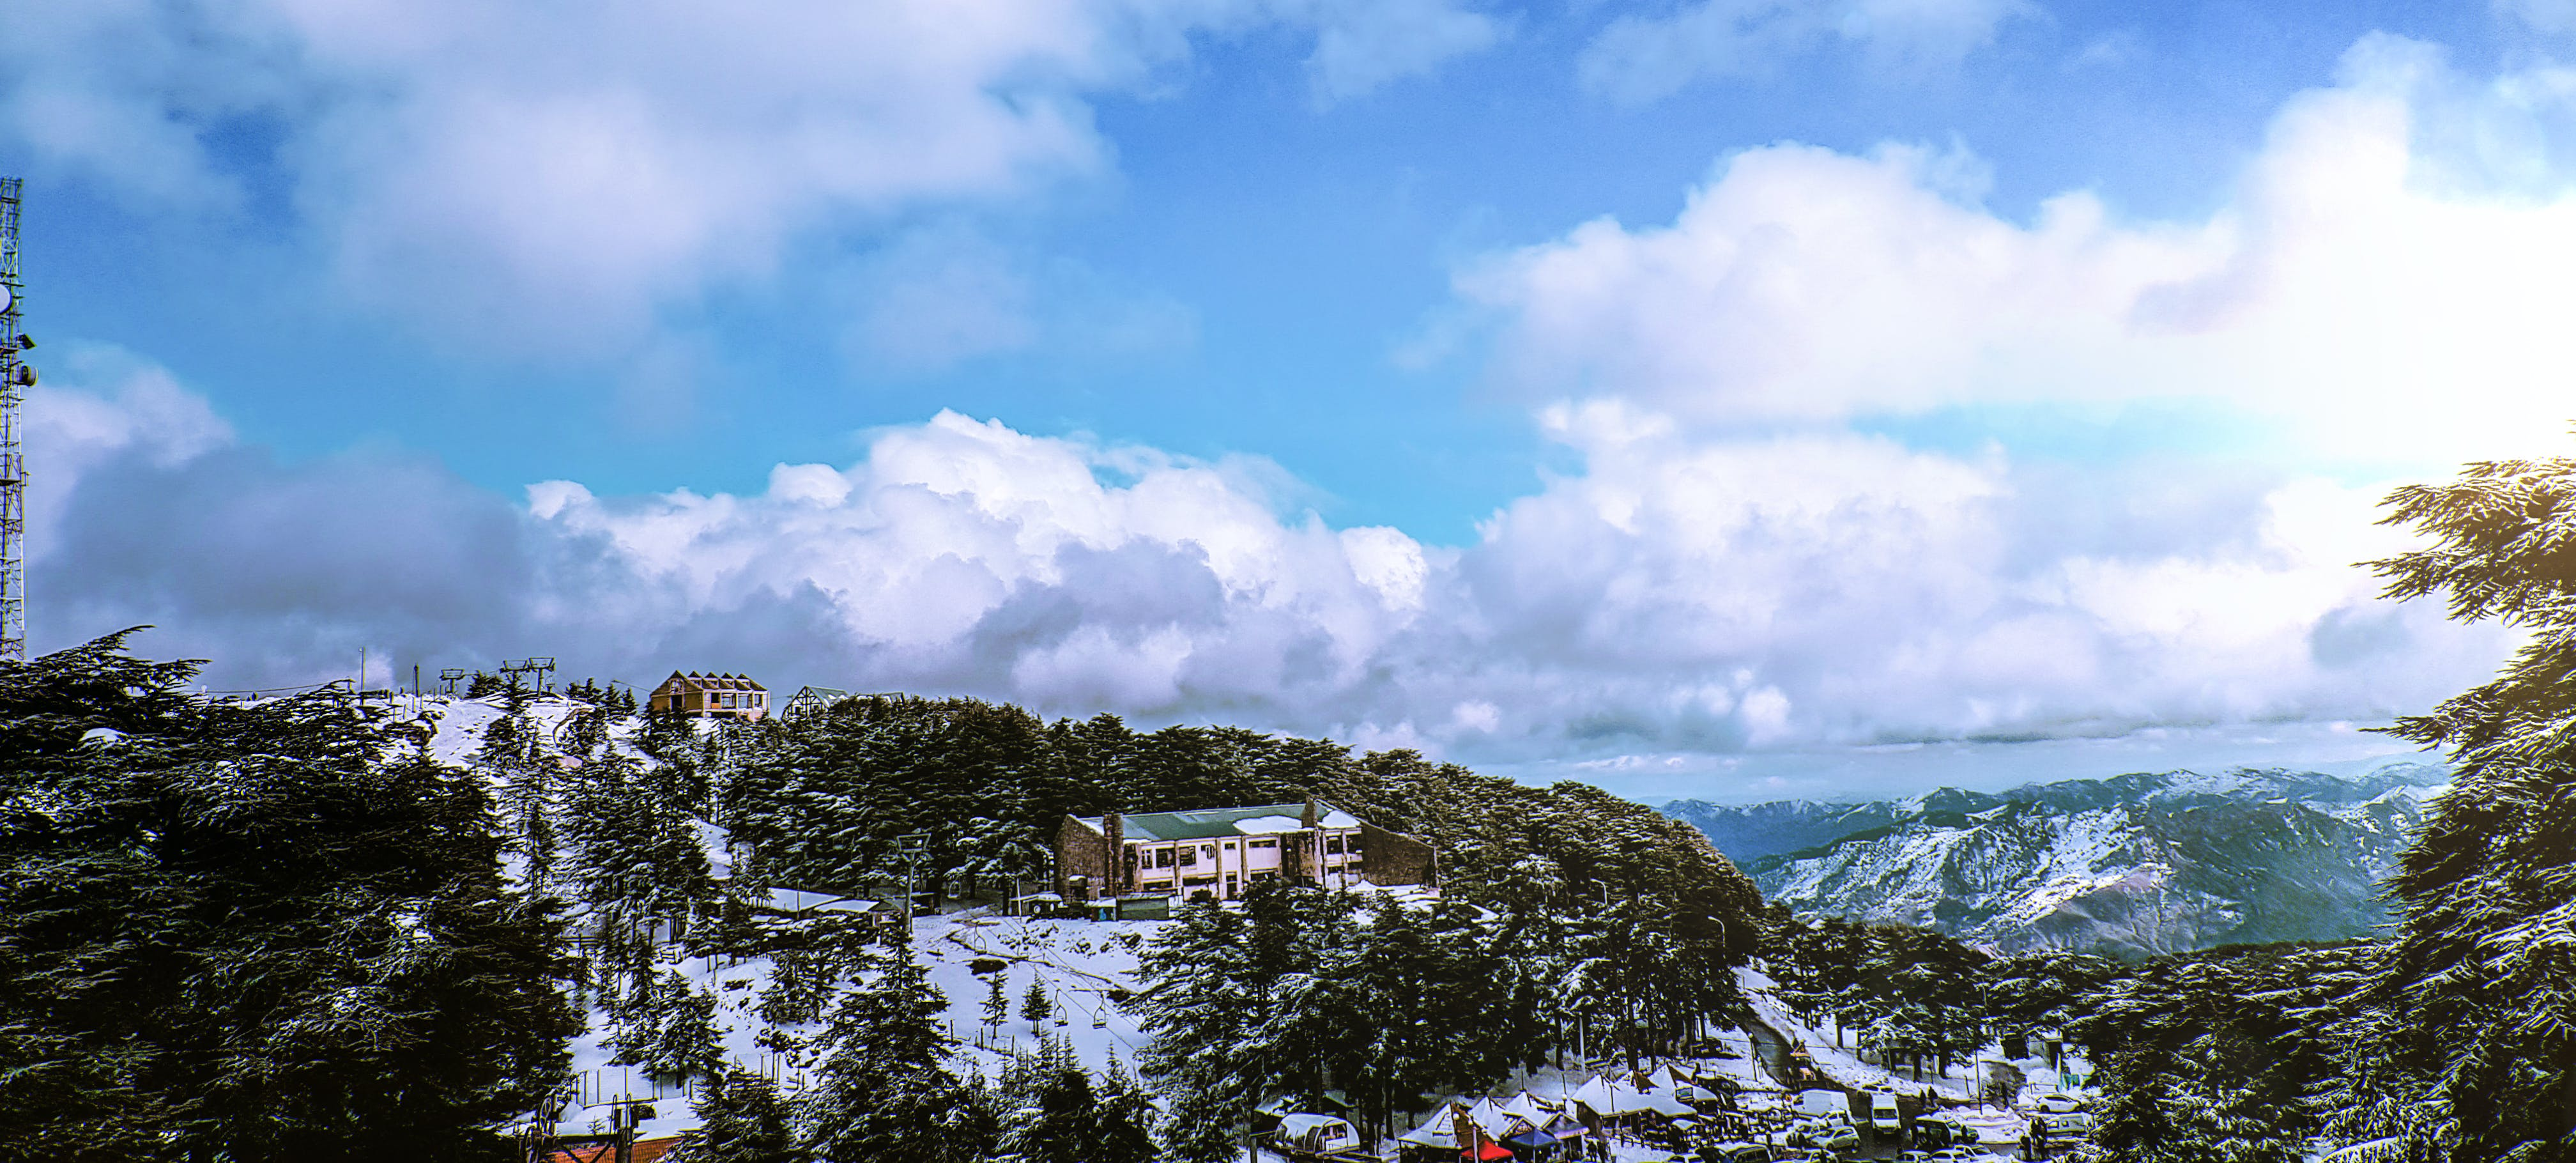 Free stock photo of clouds, hills, house, ice